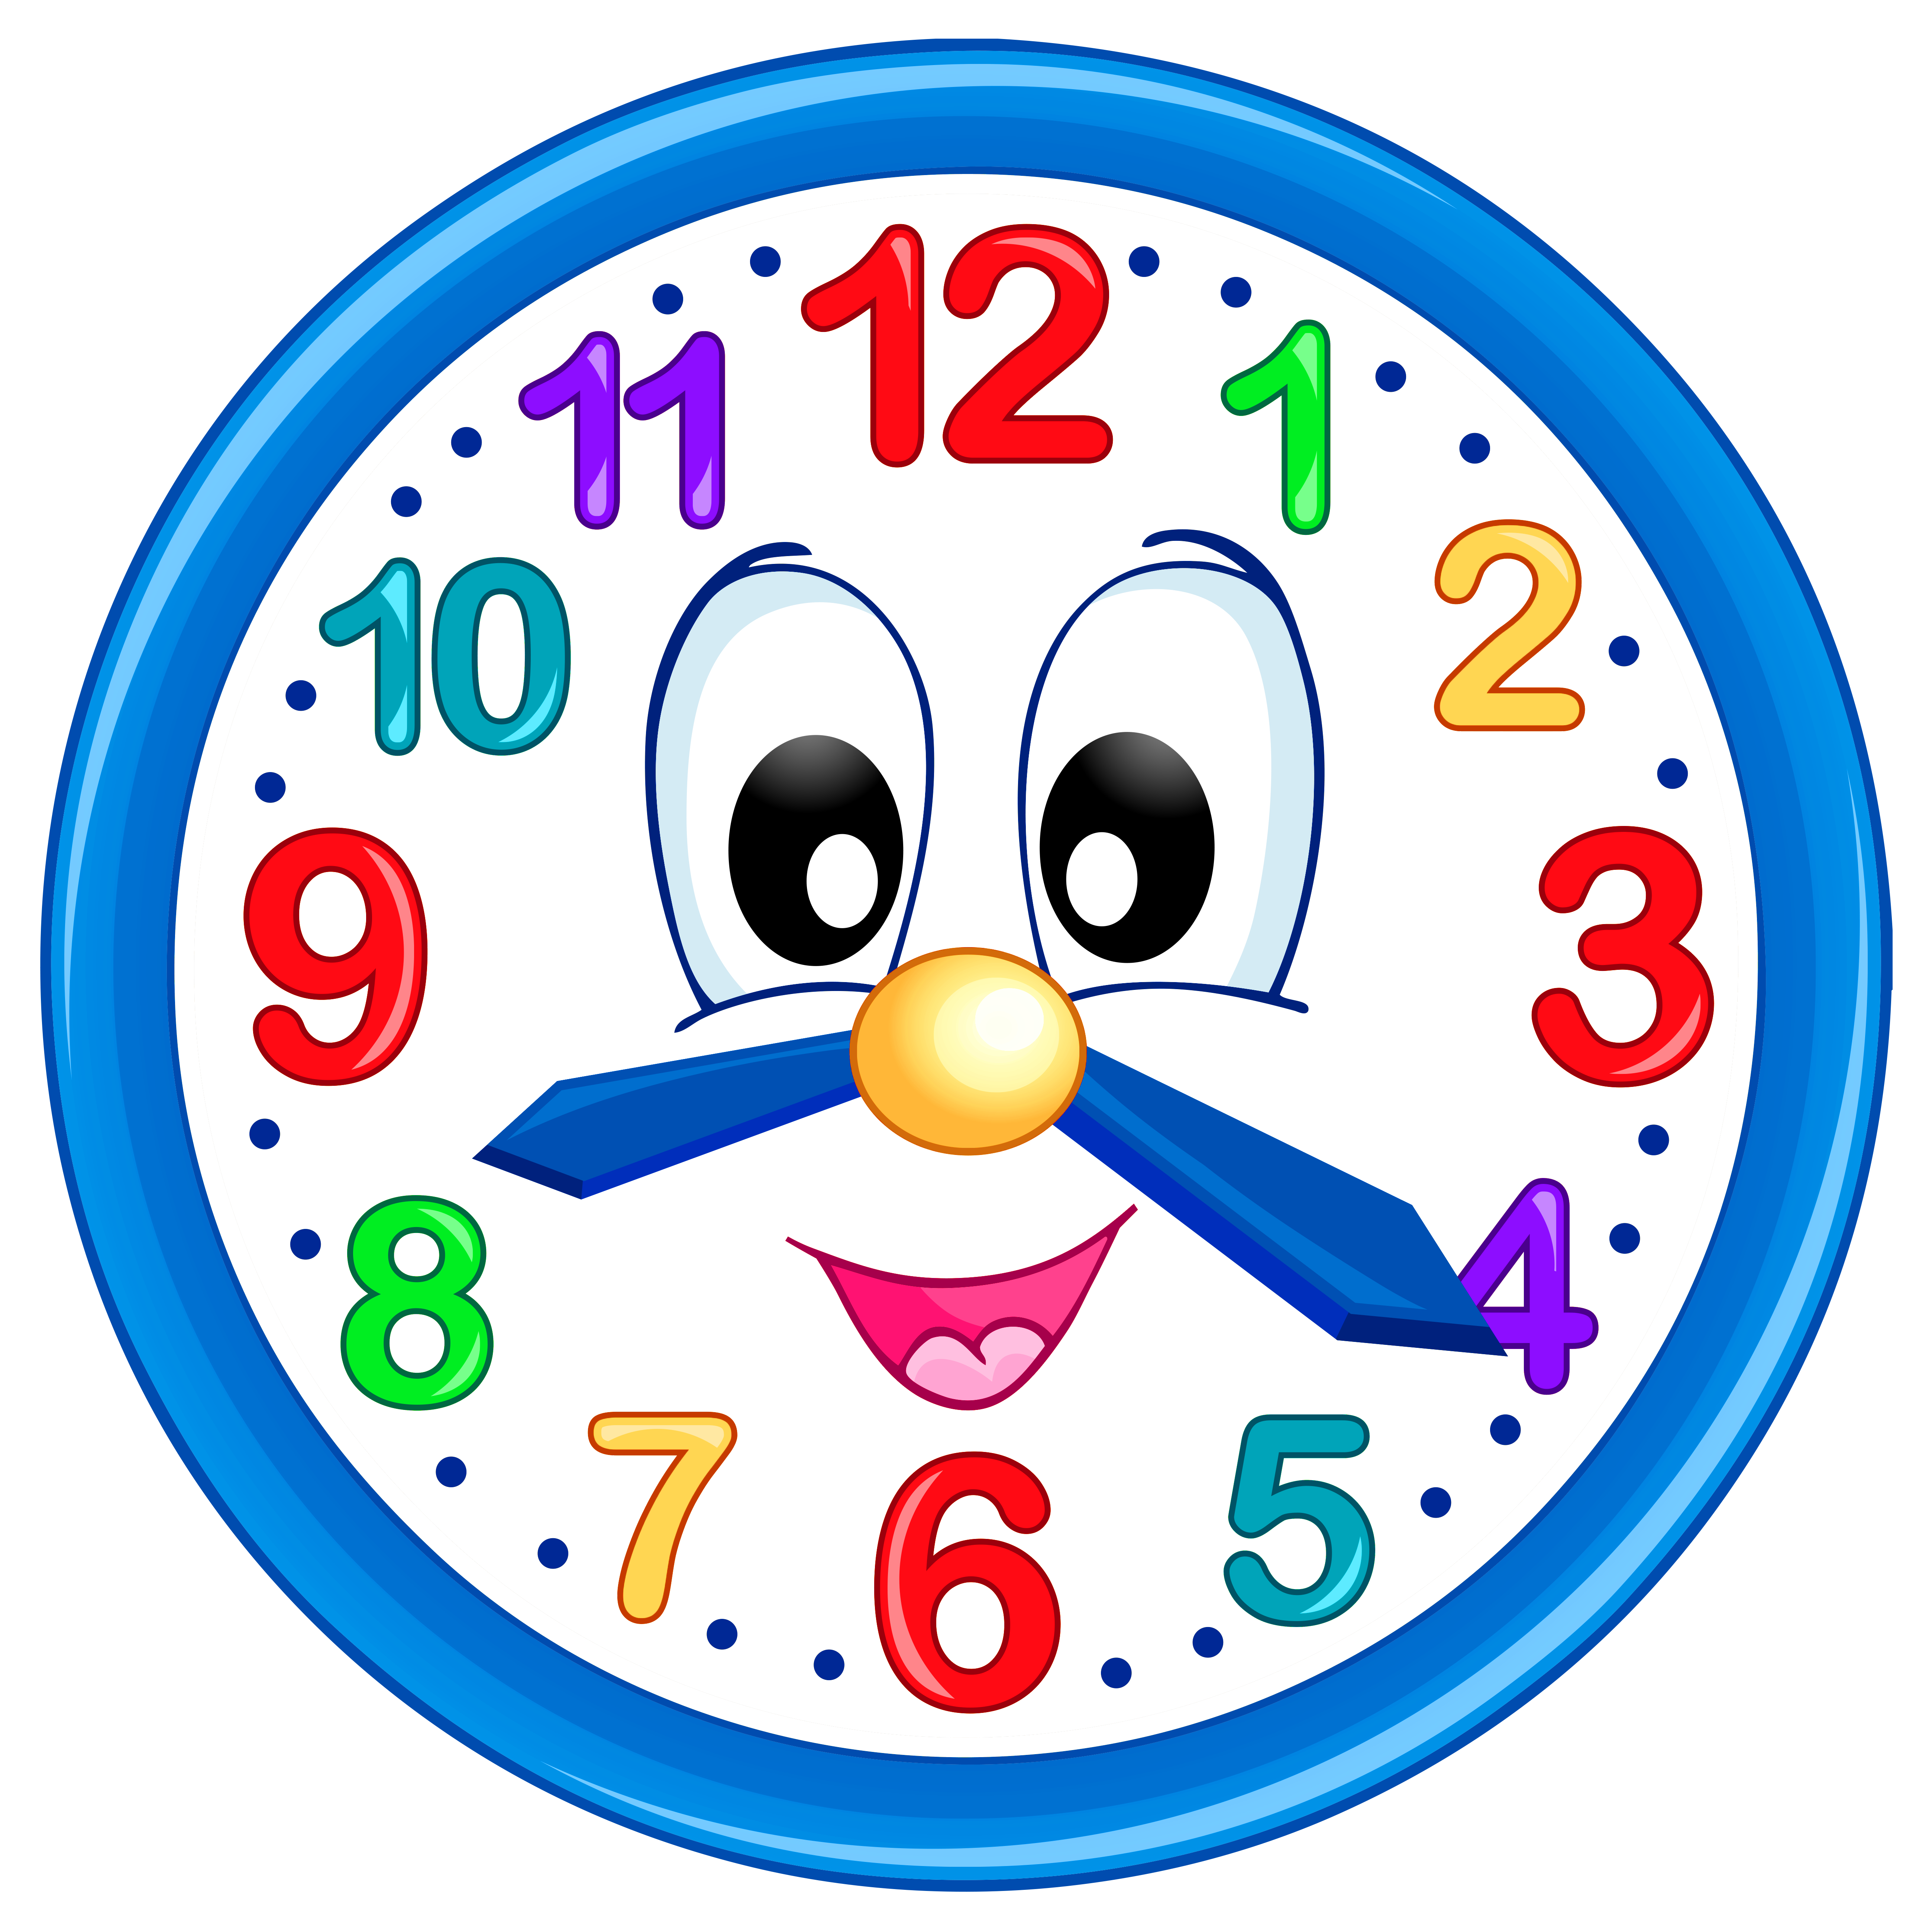 Clock Clip Art For 7 25 P M.